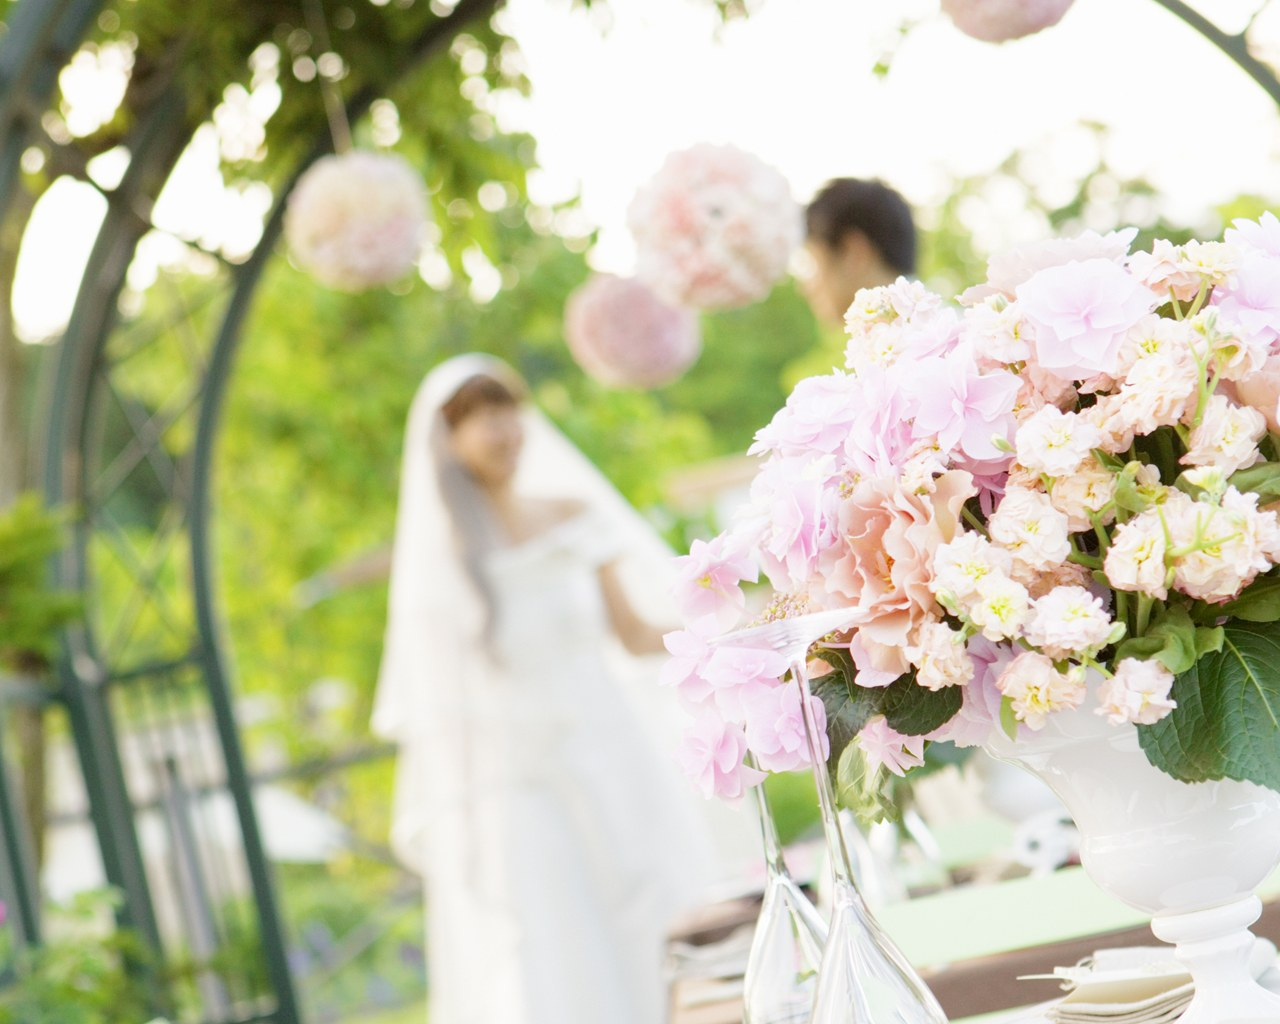 matrimonio-primavera-estate-2012-wedding-planner-milano